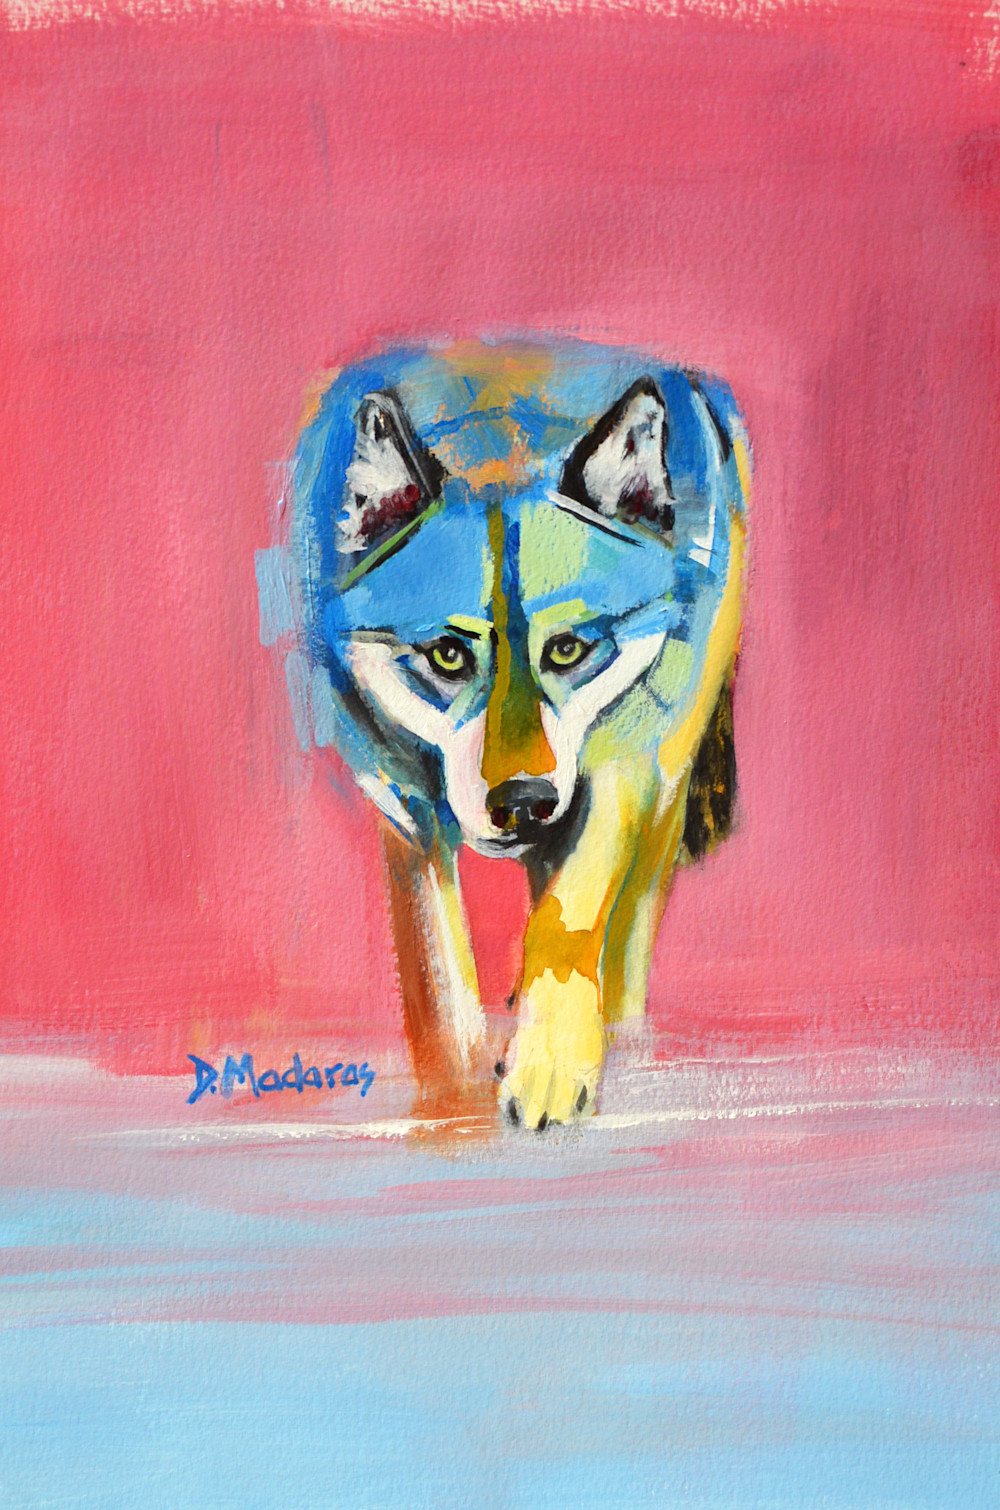 Wolf Walking | Southwest Art Gallery Tuson | Diana Madaras